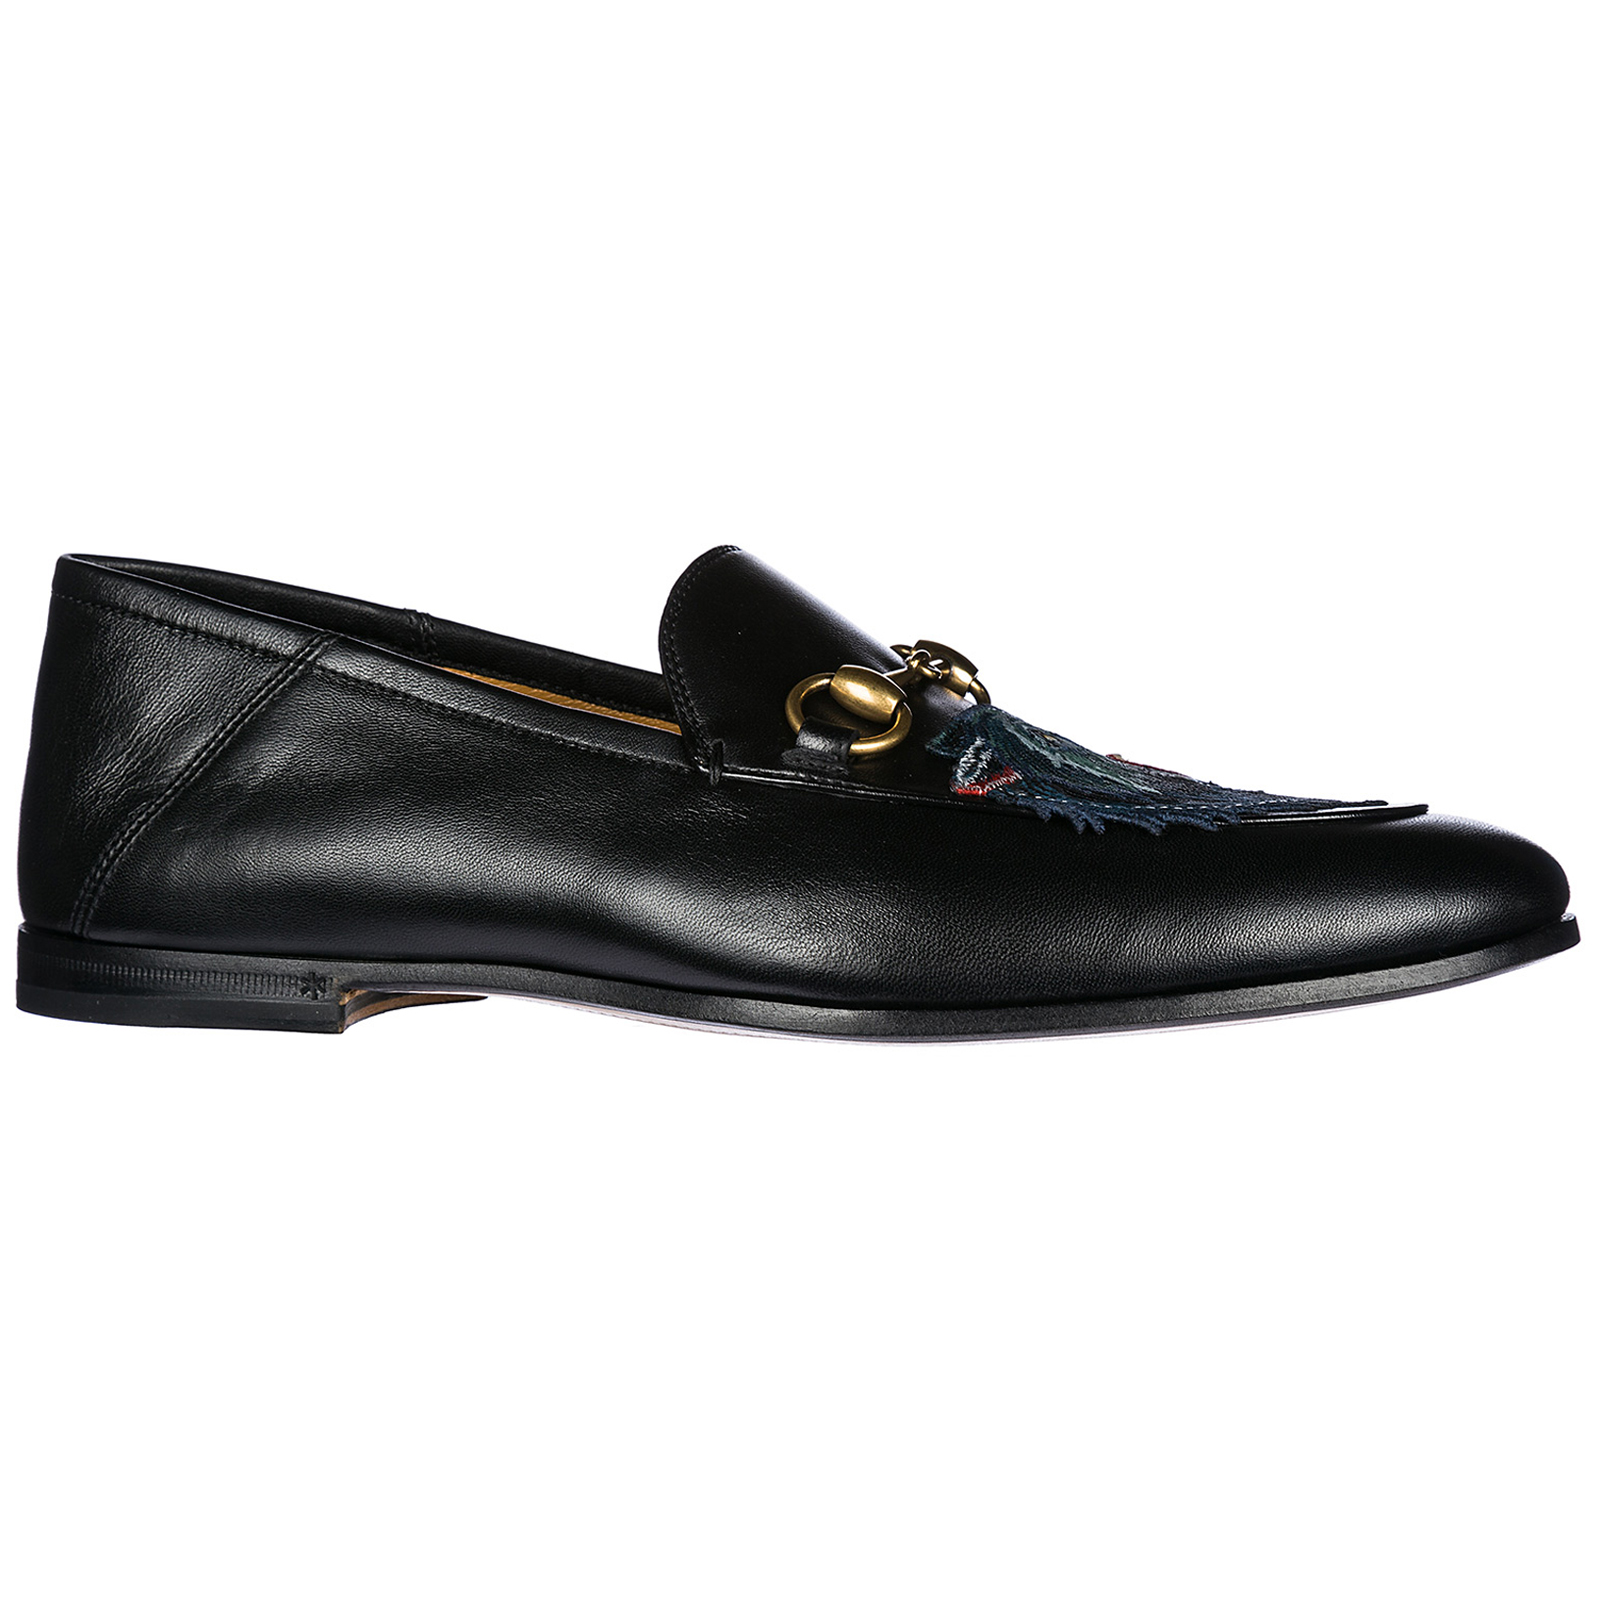 D Island Shoes Casual Oxford Loafers Genuine Leather Brown Moccasins Gucci 501020dlc001000 Nero Mens Lupo